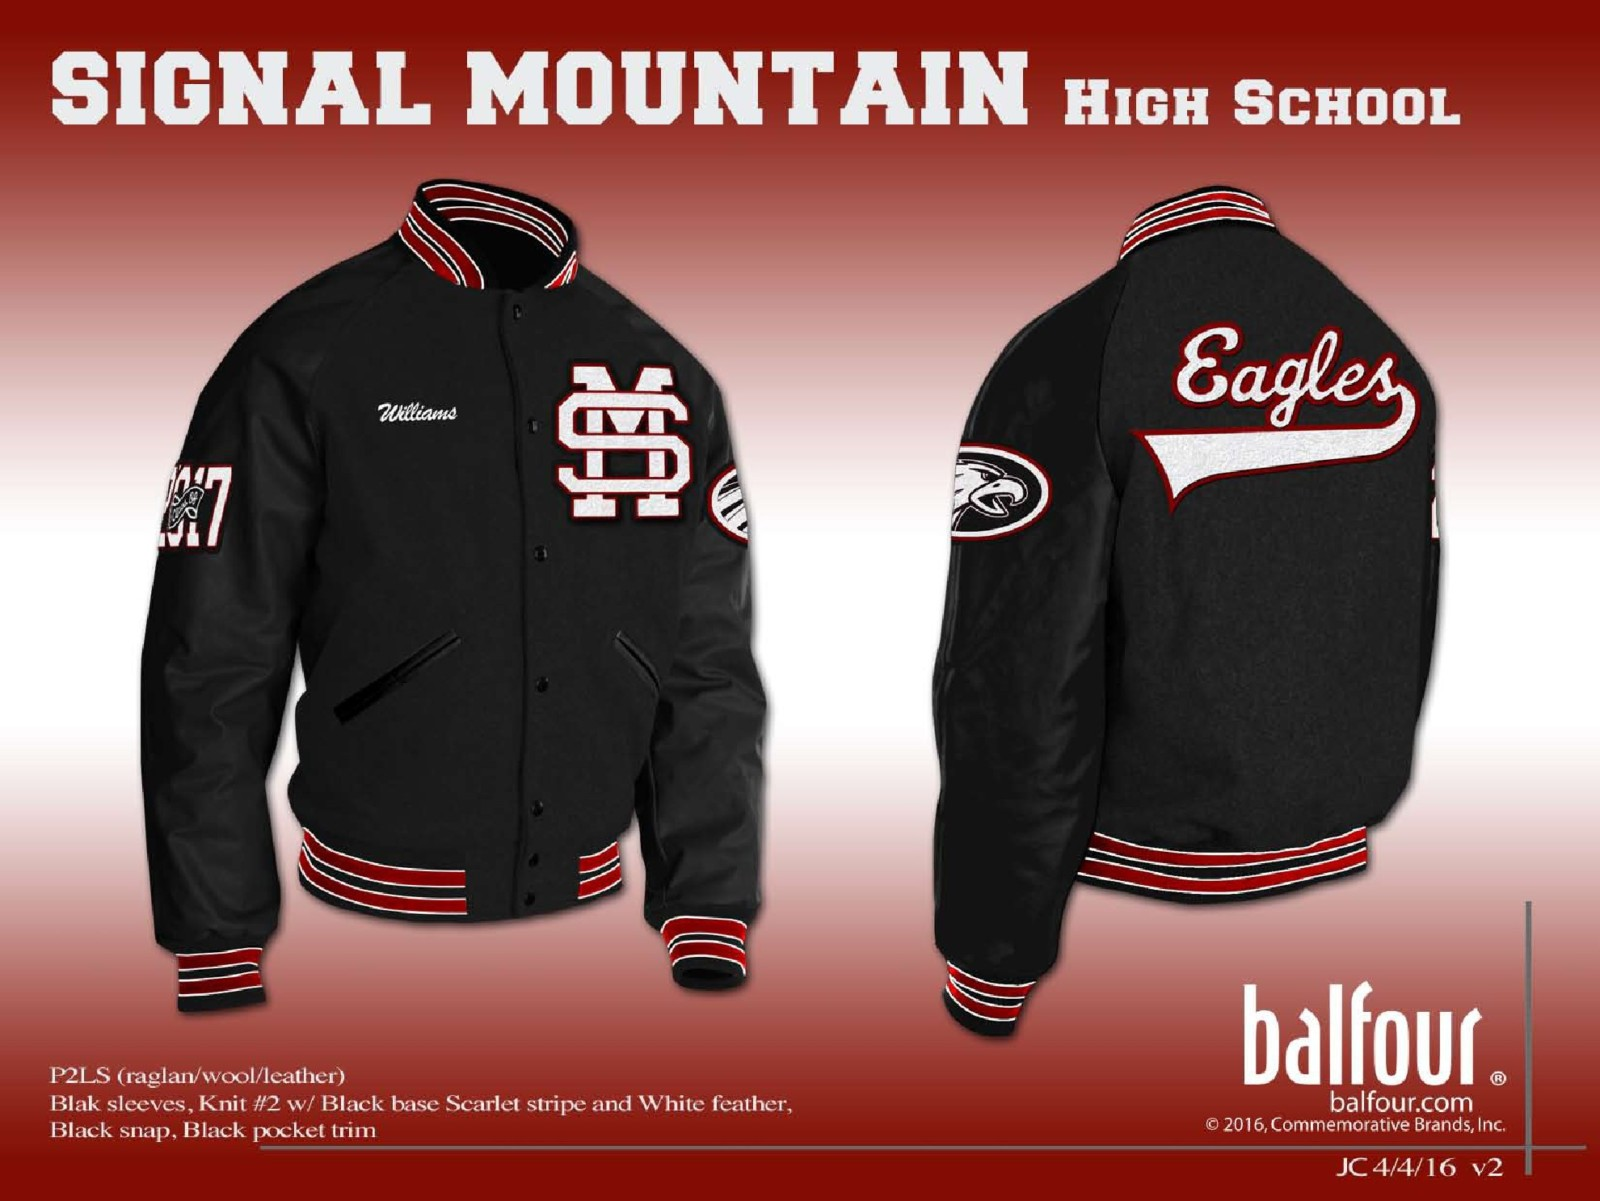 High school letter jackets for athletes bands and club balfour letter jackets spiritdancerdesigns Choice Image